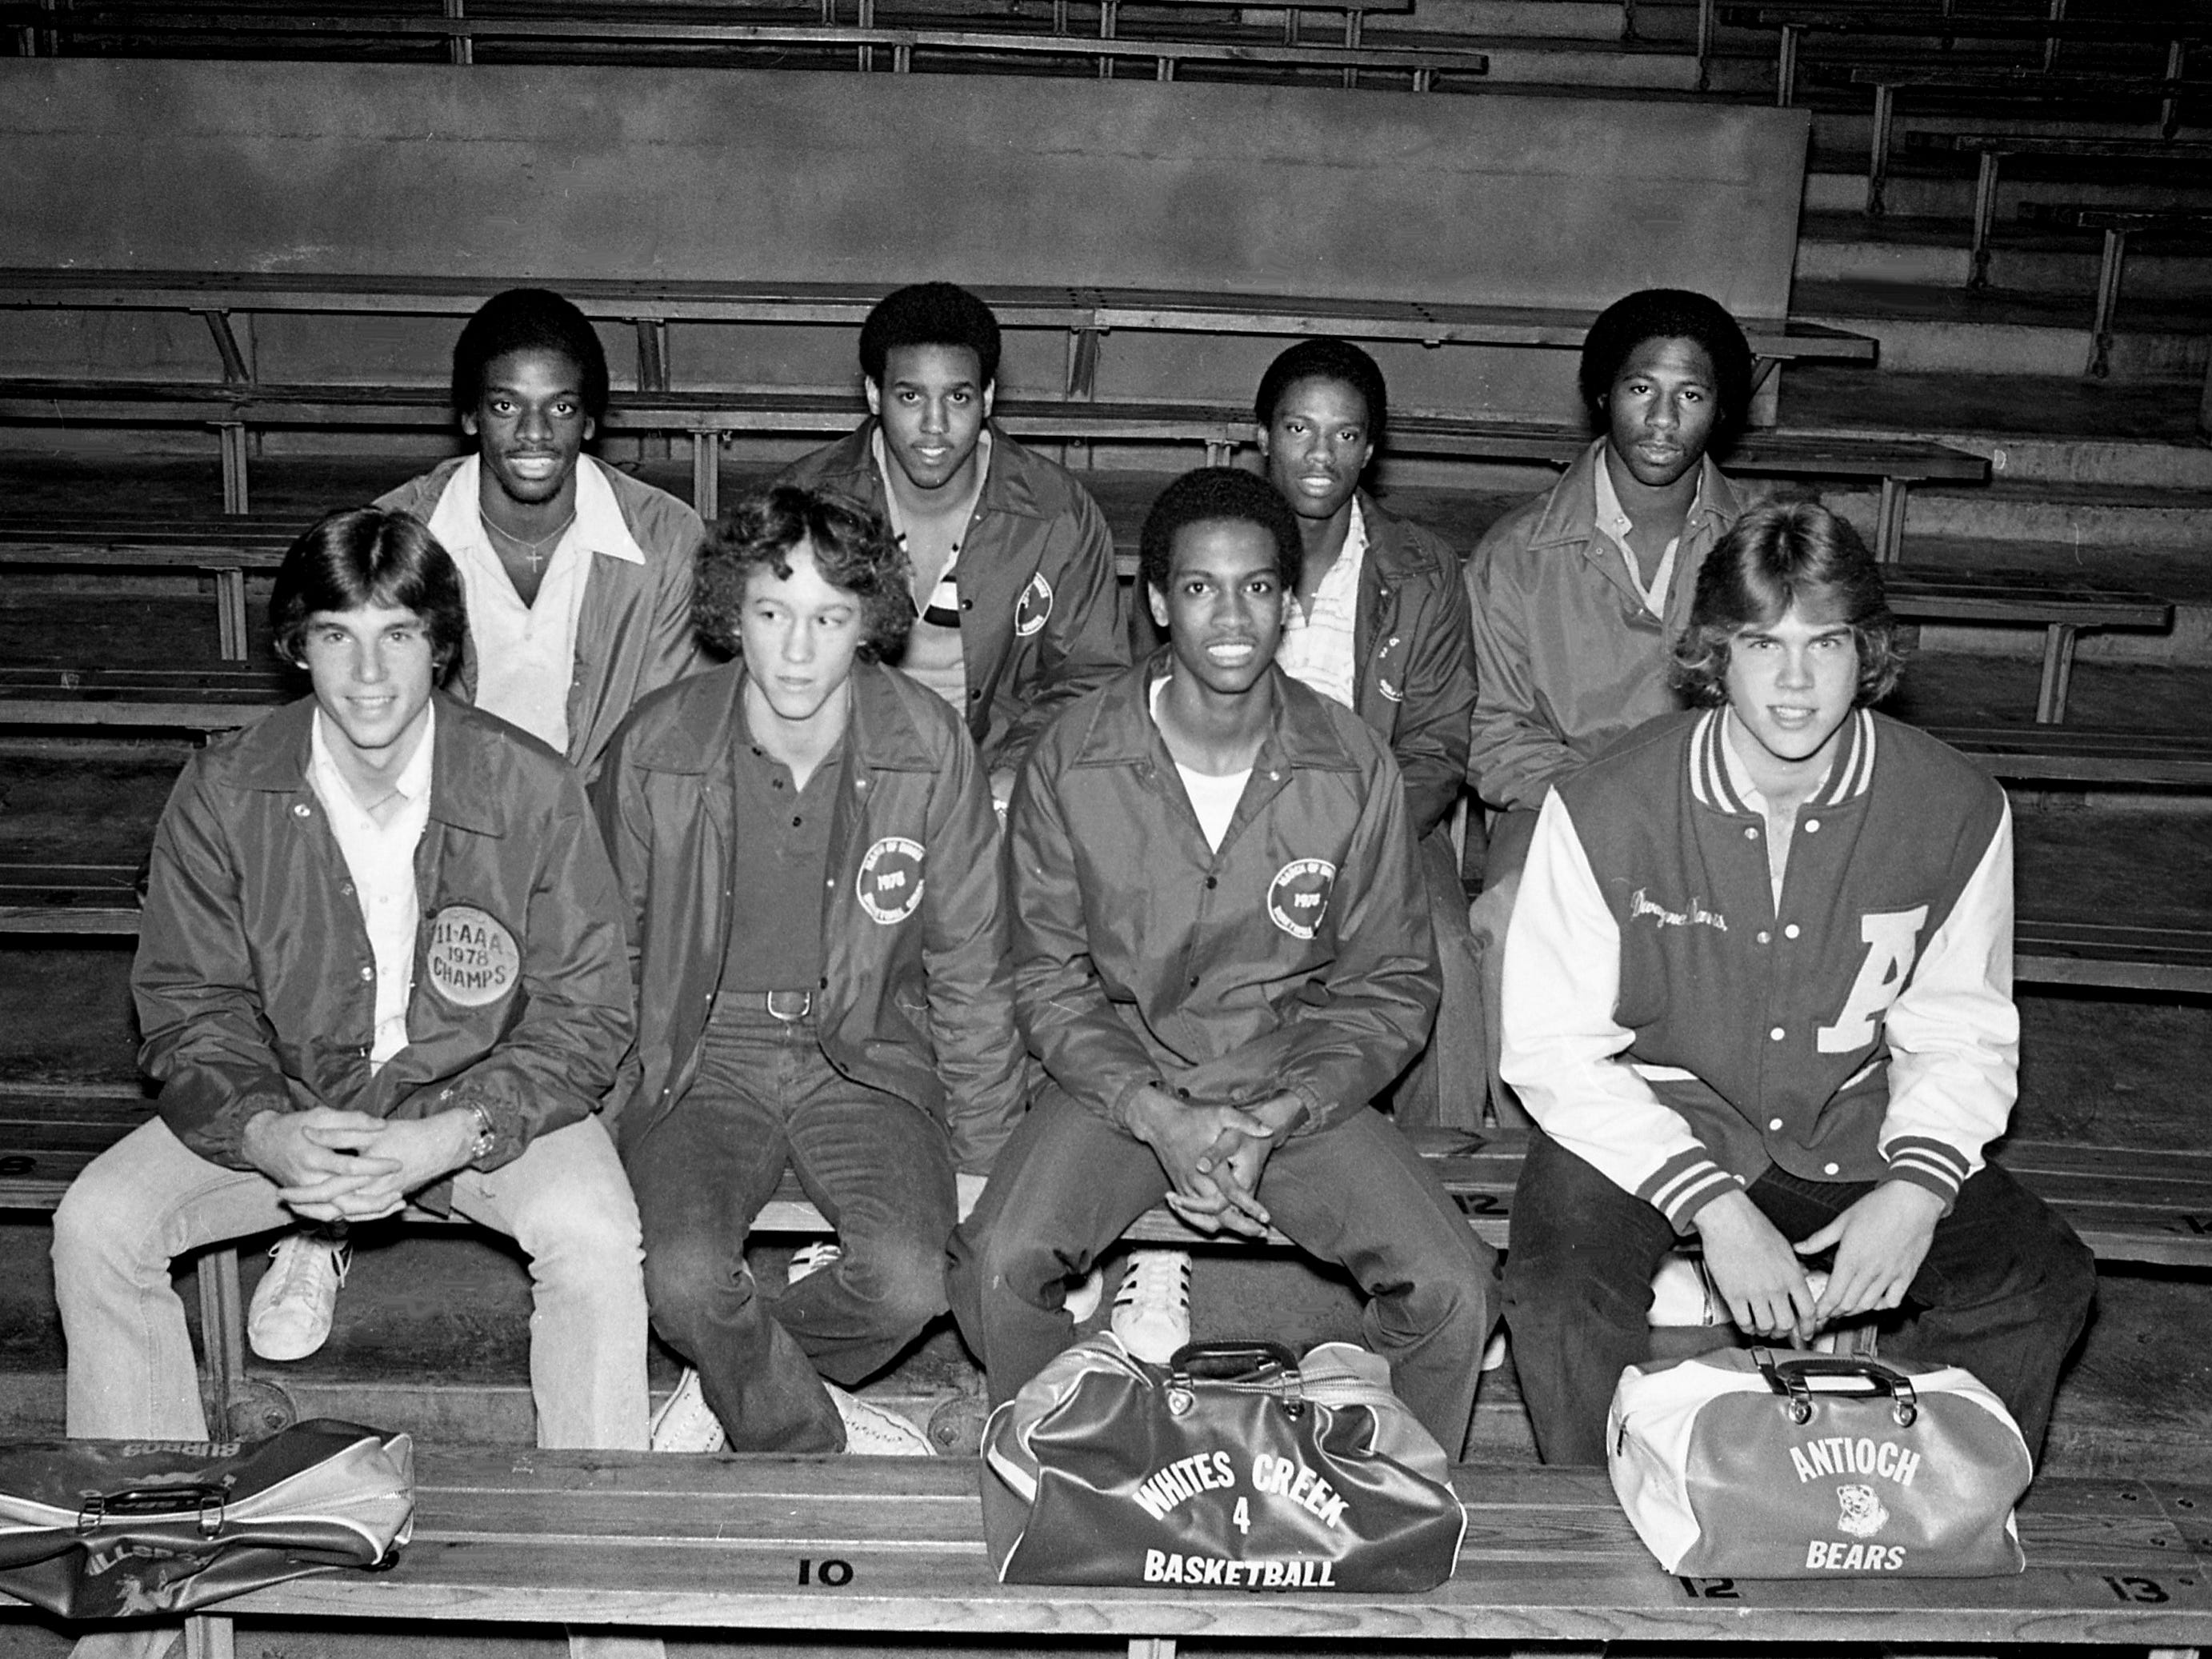 Vance Wheeler of Hillsboro High, front row left, Larry Breedlove of Bellevue High, Troy Hall of Whites Creek High and Dewayne Davis of Antioch High, Anthony Eubanks of Hillsboro High, back row left, Lenny Manning and William Reed of Maplewood High and James Drummond of Pearl High are posing for The Tennessean's 1979 All-NIL basketball team at Vanderbilt University's Memorial Gym on April 5, 1979.